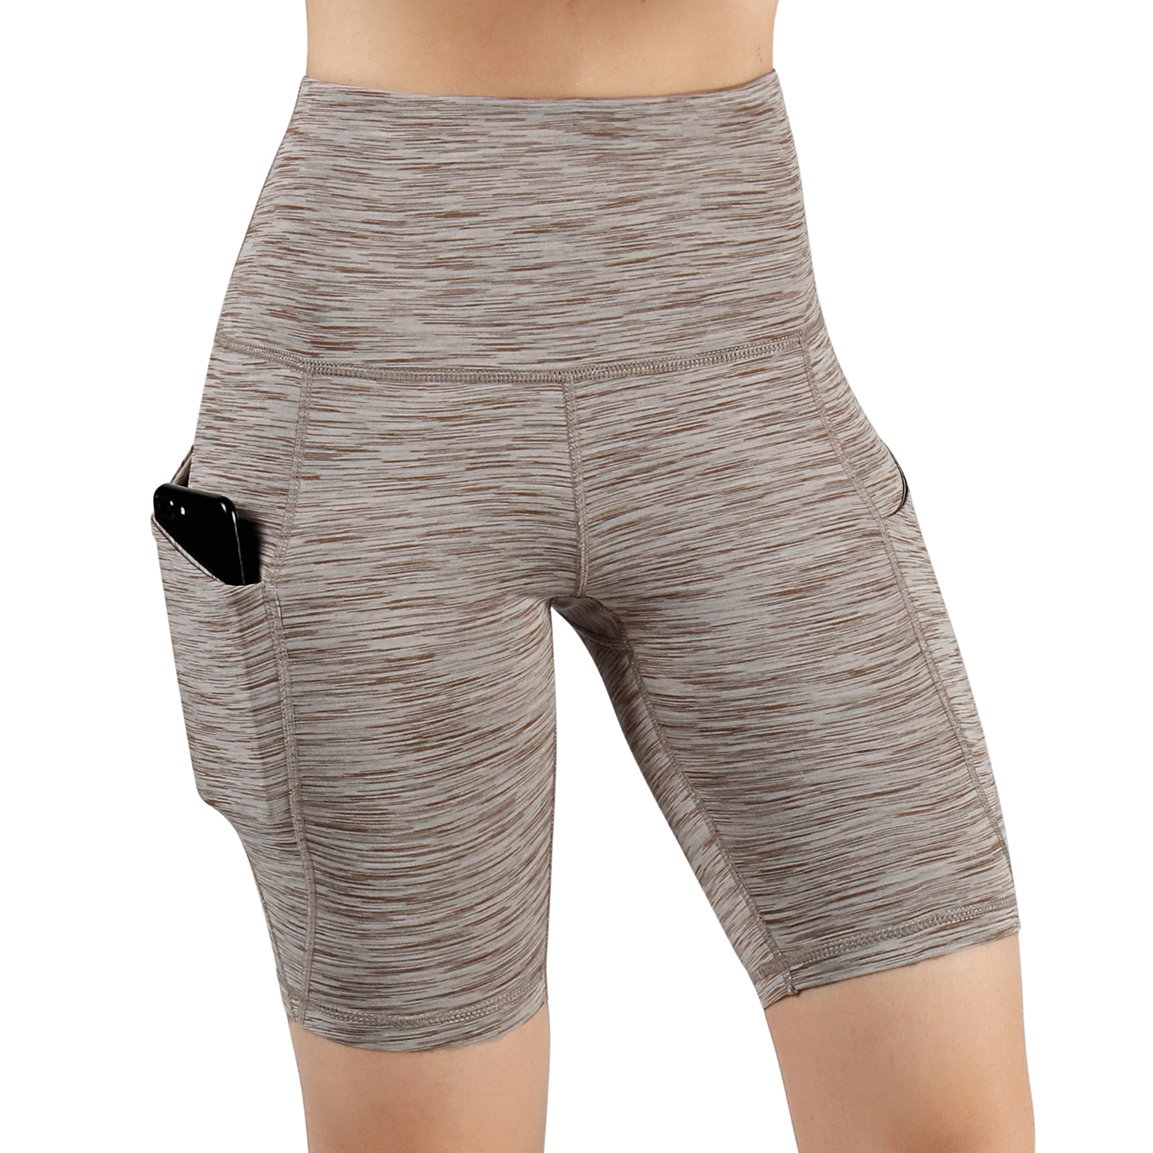 ODODOS High Waist Out Pocket Yoga Short Tummy Control Workout Running Athletic Non See-Through Yoga Shorts,SpaceDyeBrown,X-Small by ODODOS